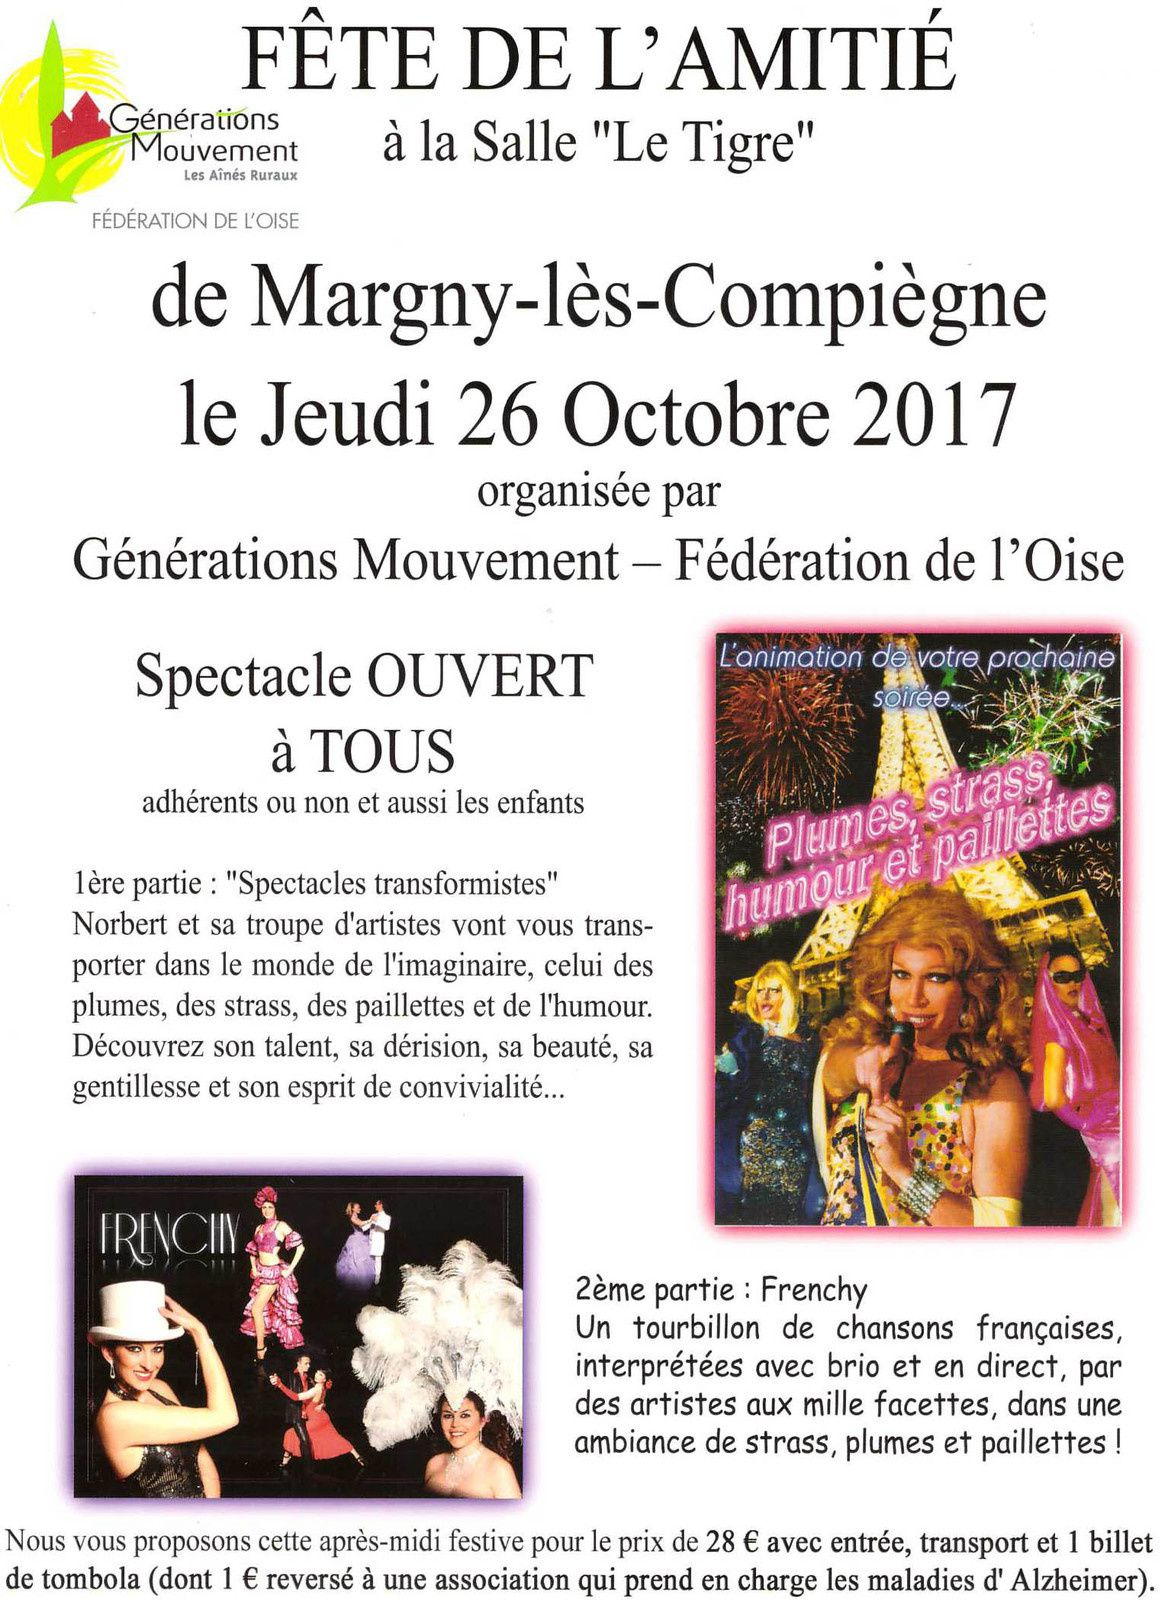 jeudi 26 octobre 2017 fete de l 39 amitie la salle le tigre margny les compiegne. Black Bedroom Furniture Sets. Home Design Ideas